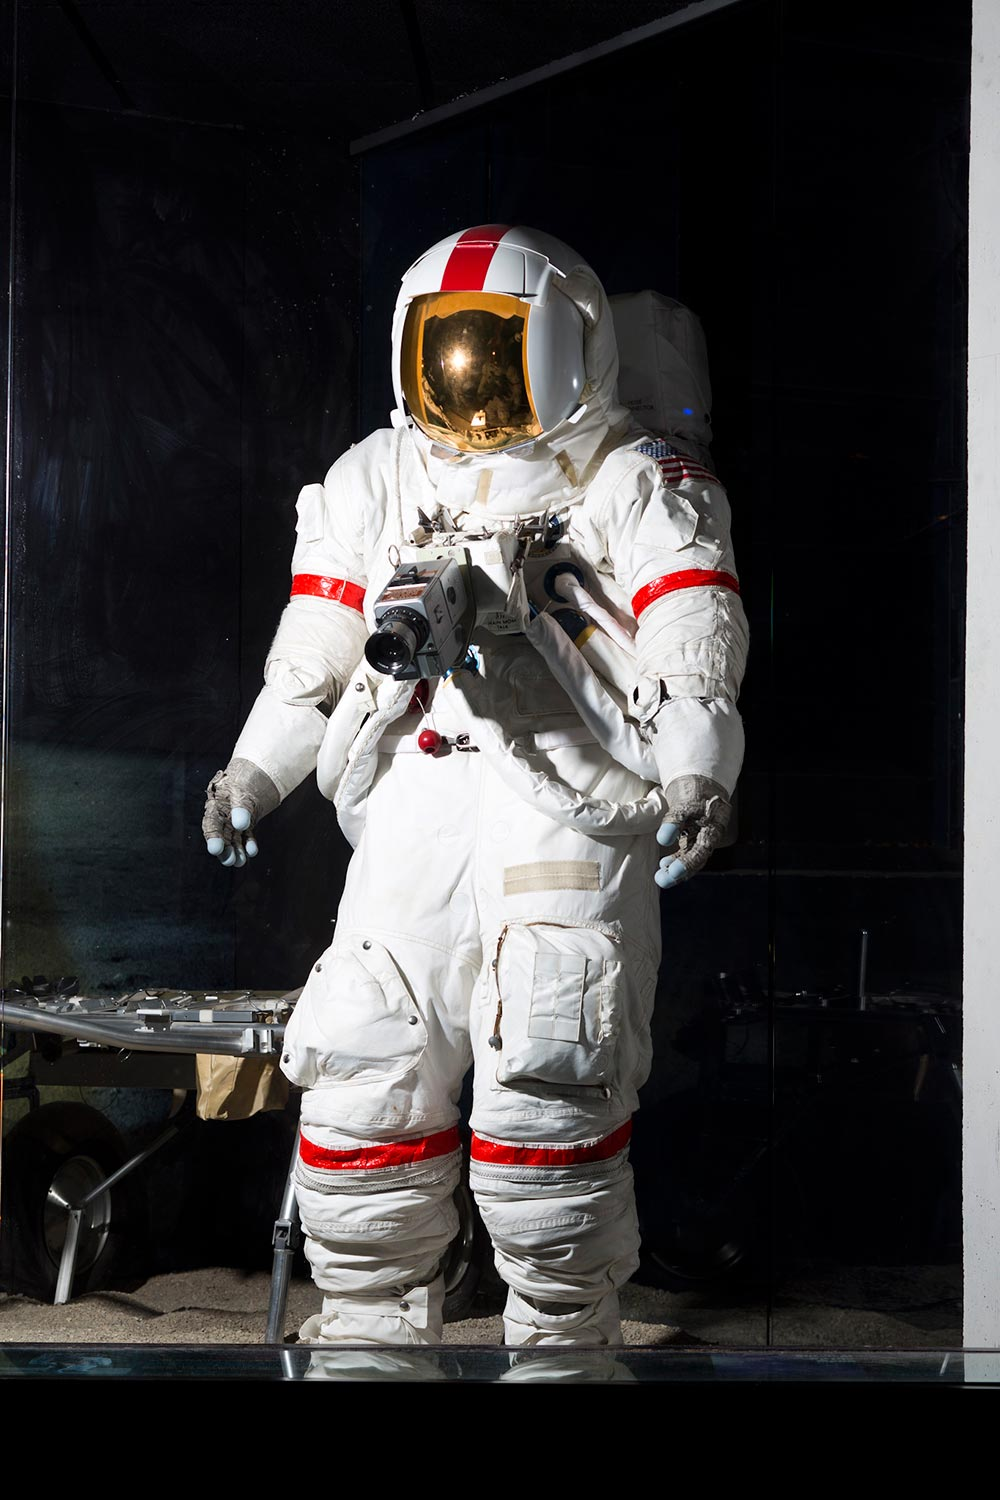 apollo space suit backpack - photo #23